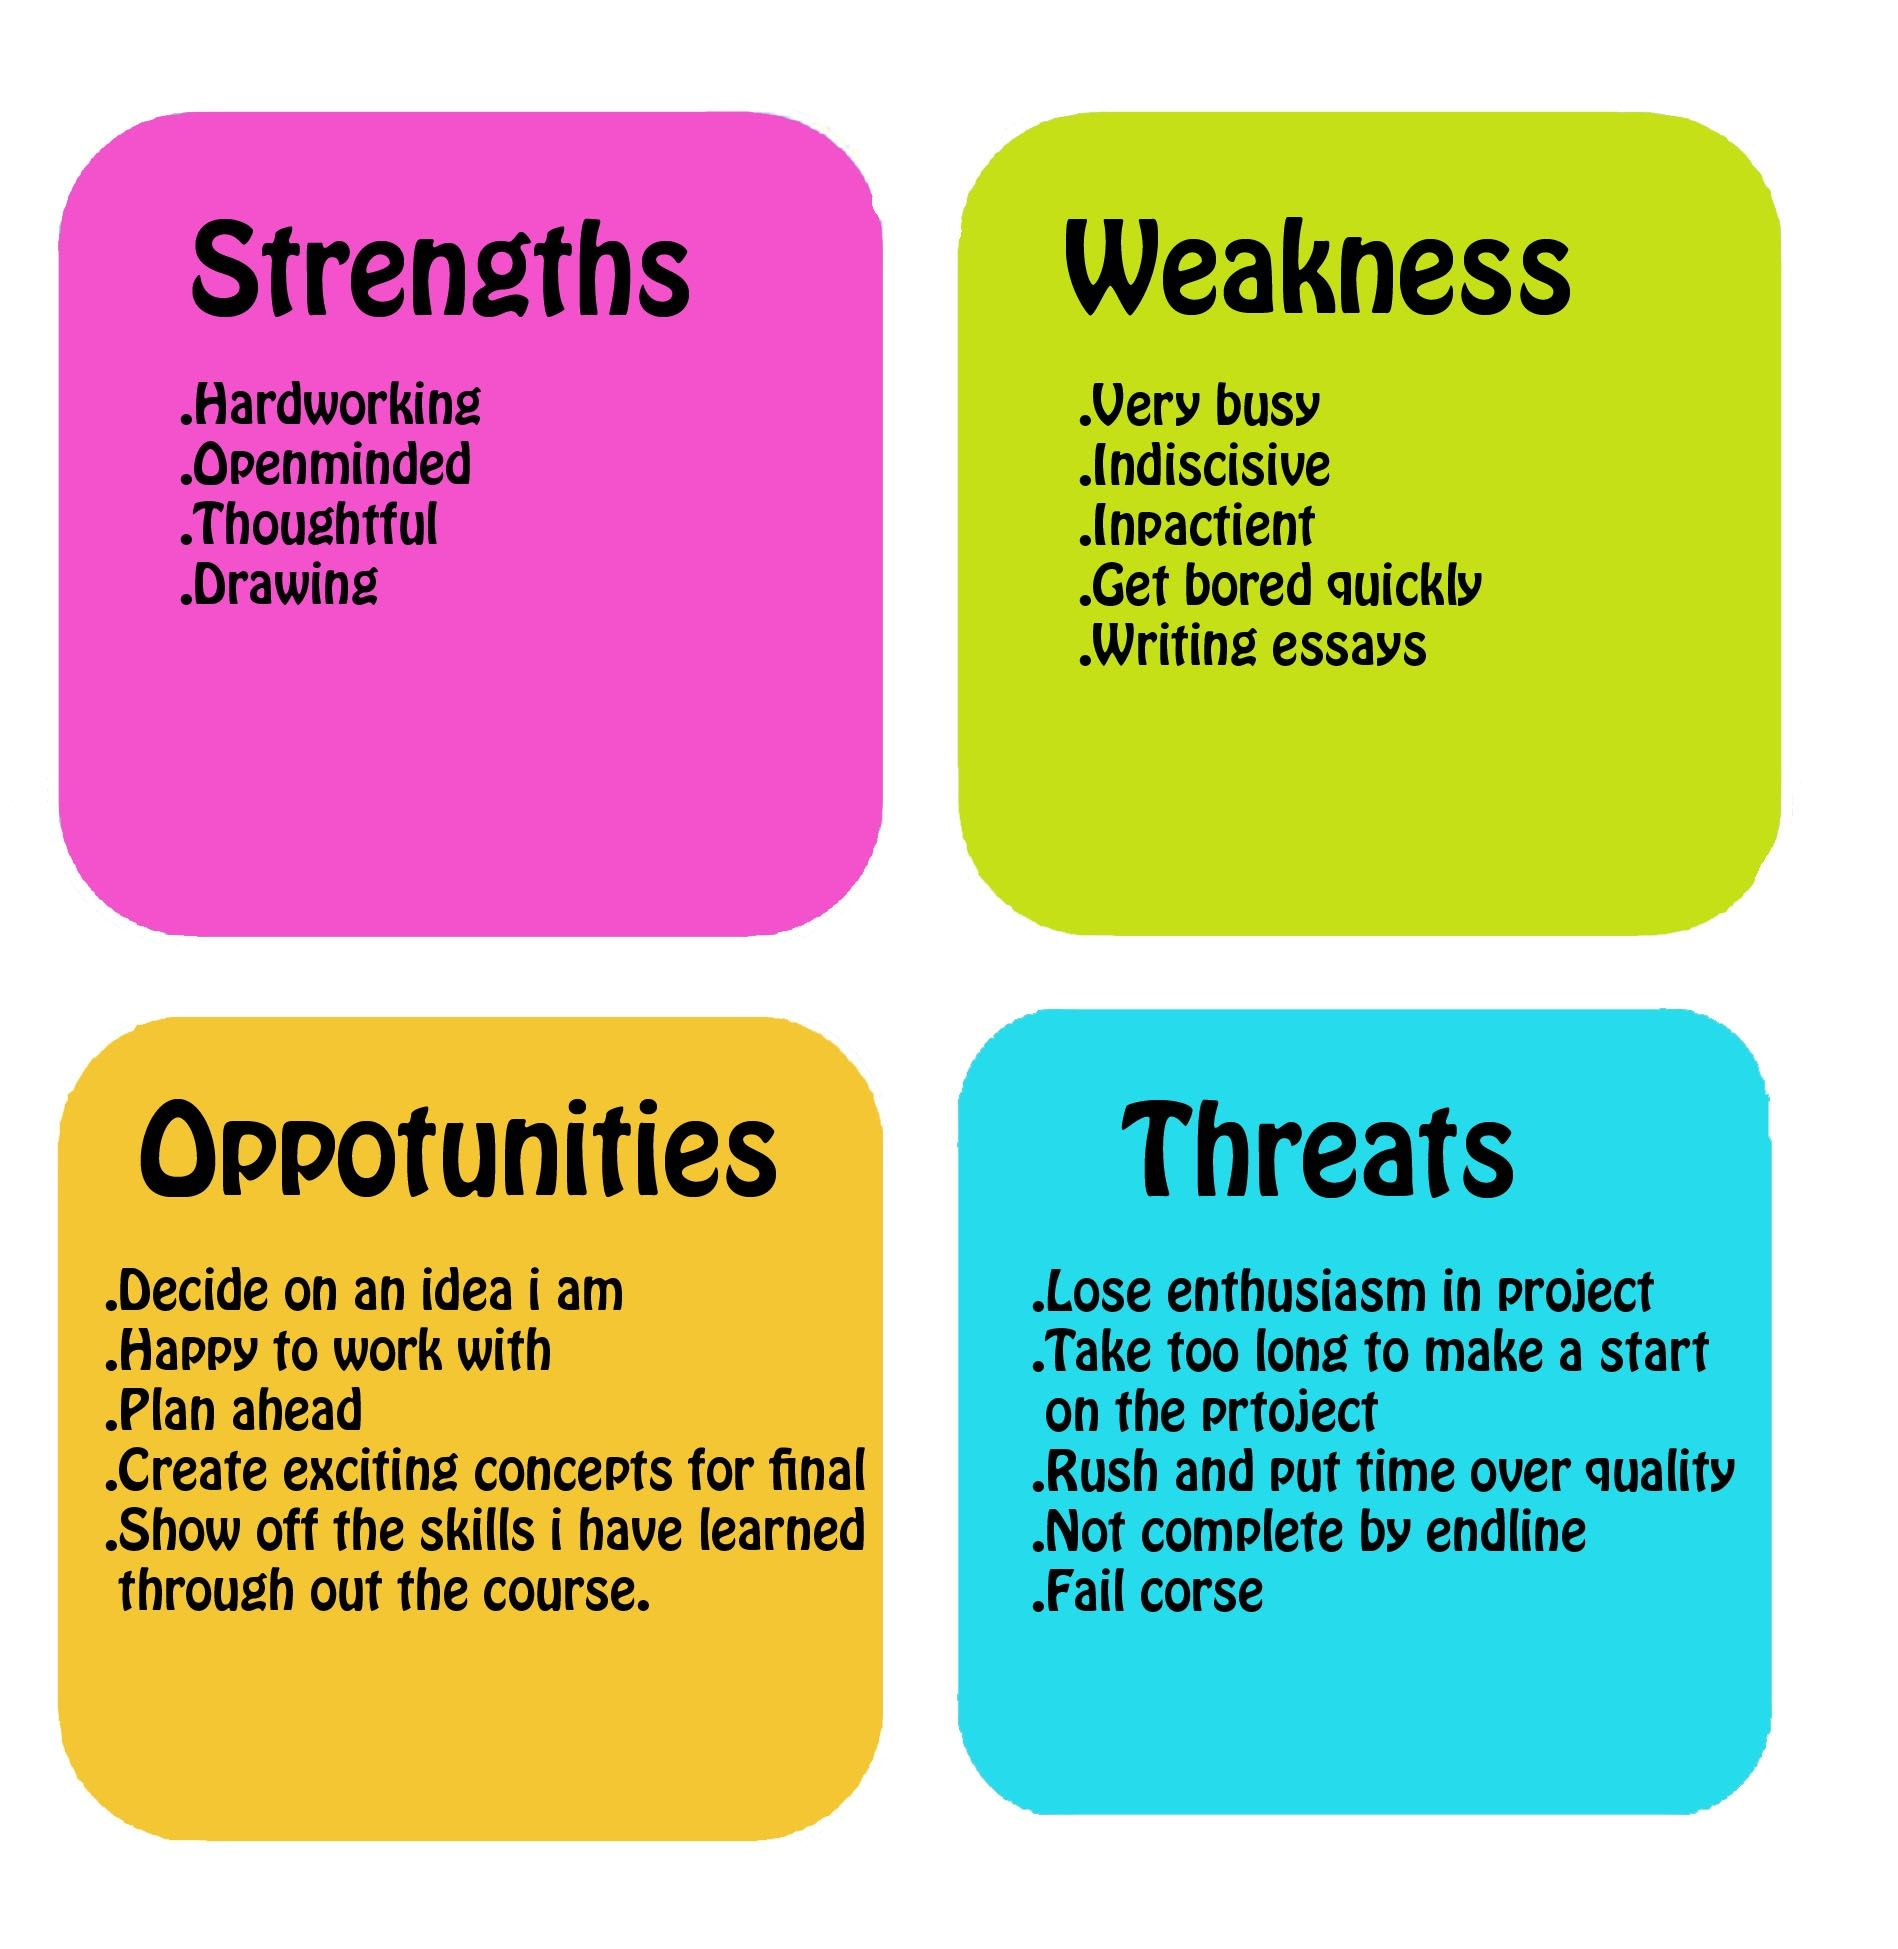 swot analysis innovation sharing economy diagram strengths weakness opportunities threats example personal google search